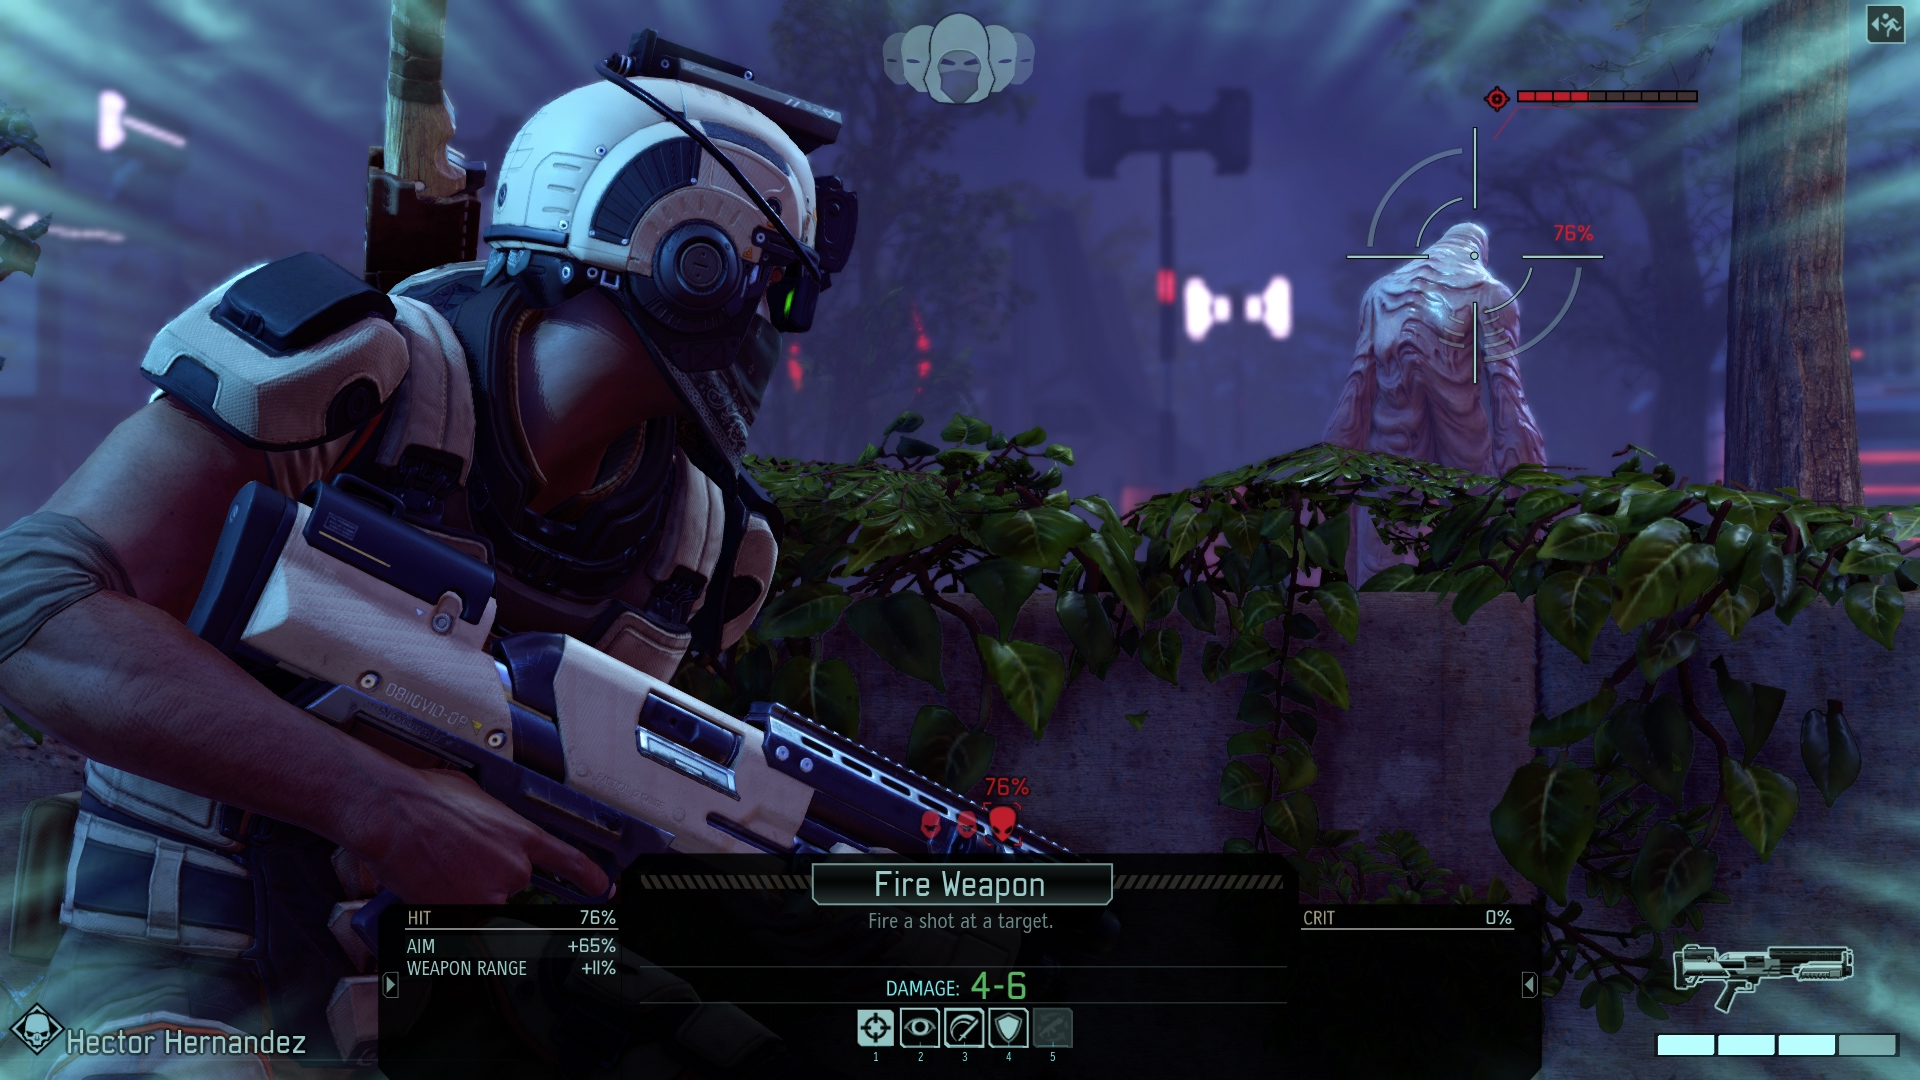 Fix it xcom 2 crashing freezing solutions chaos hour so often publicscrutiny Image collections